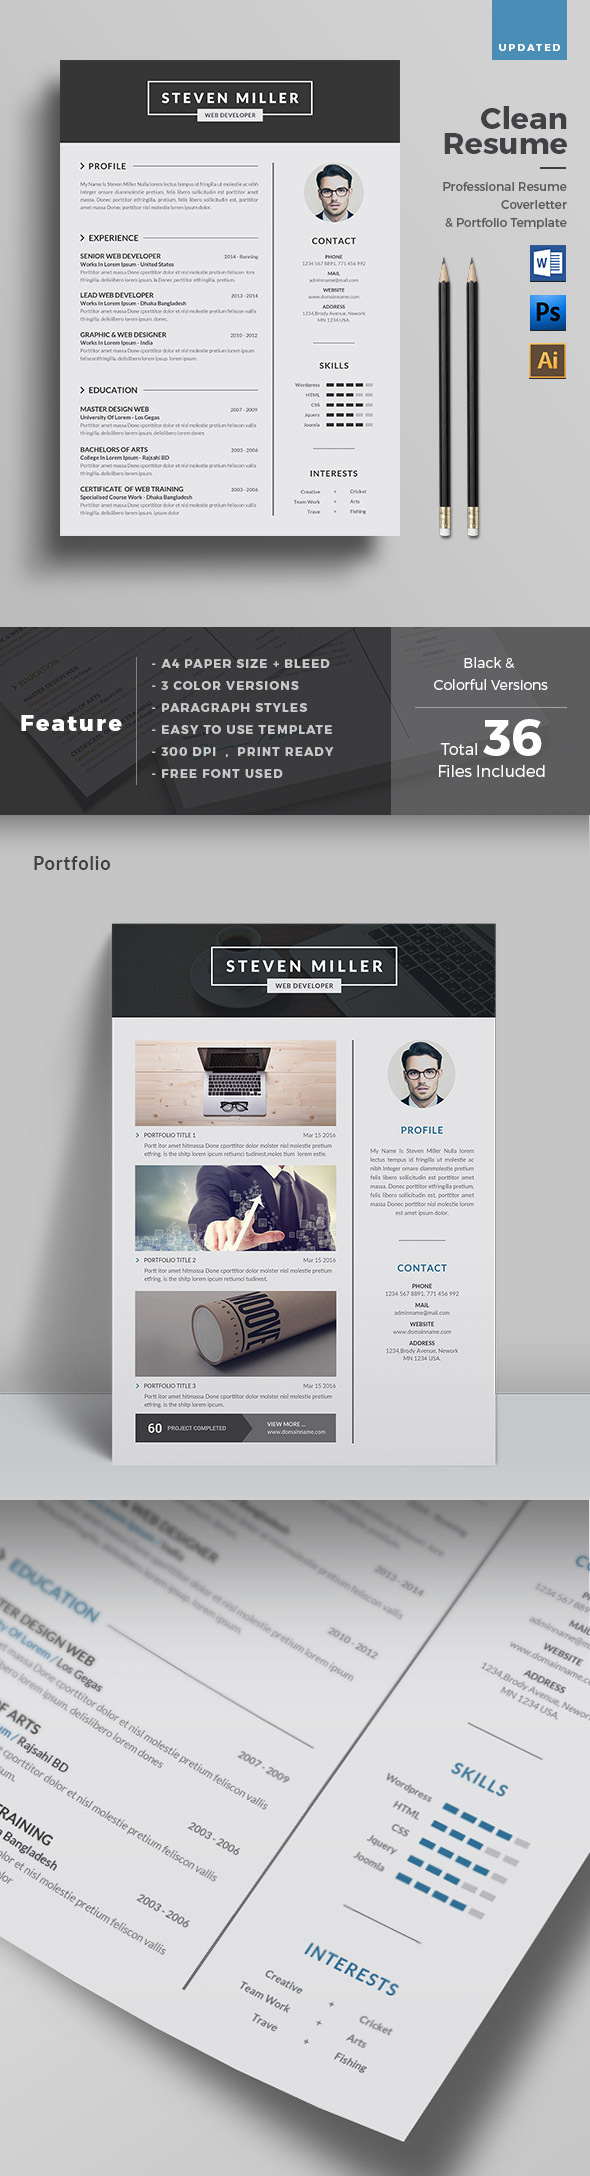 creative resume templates to land a new job in style clean creative resume template